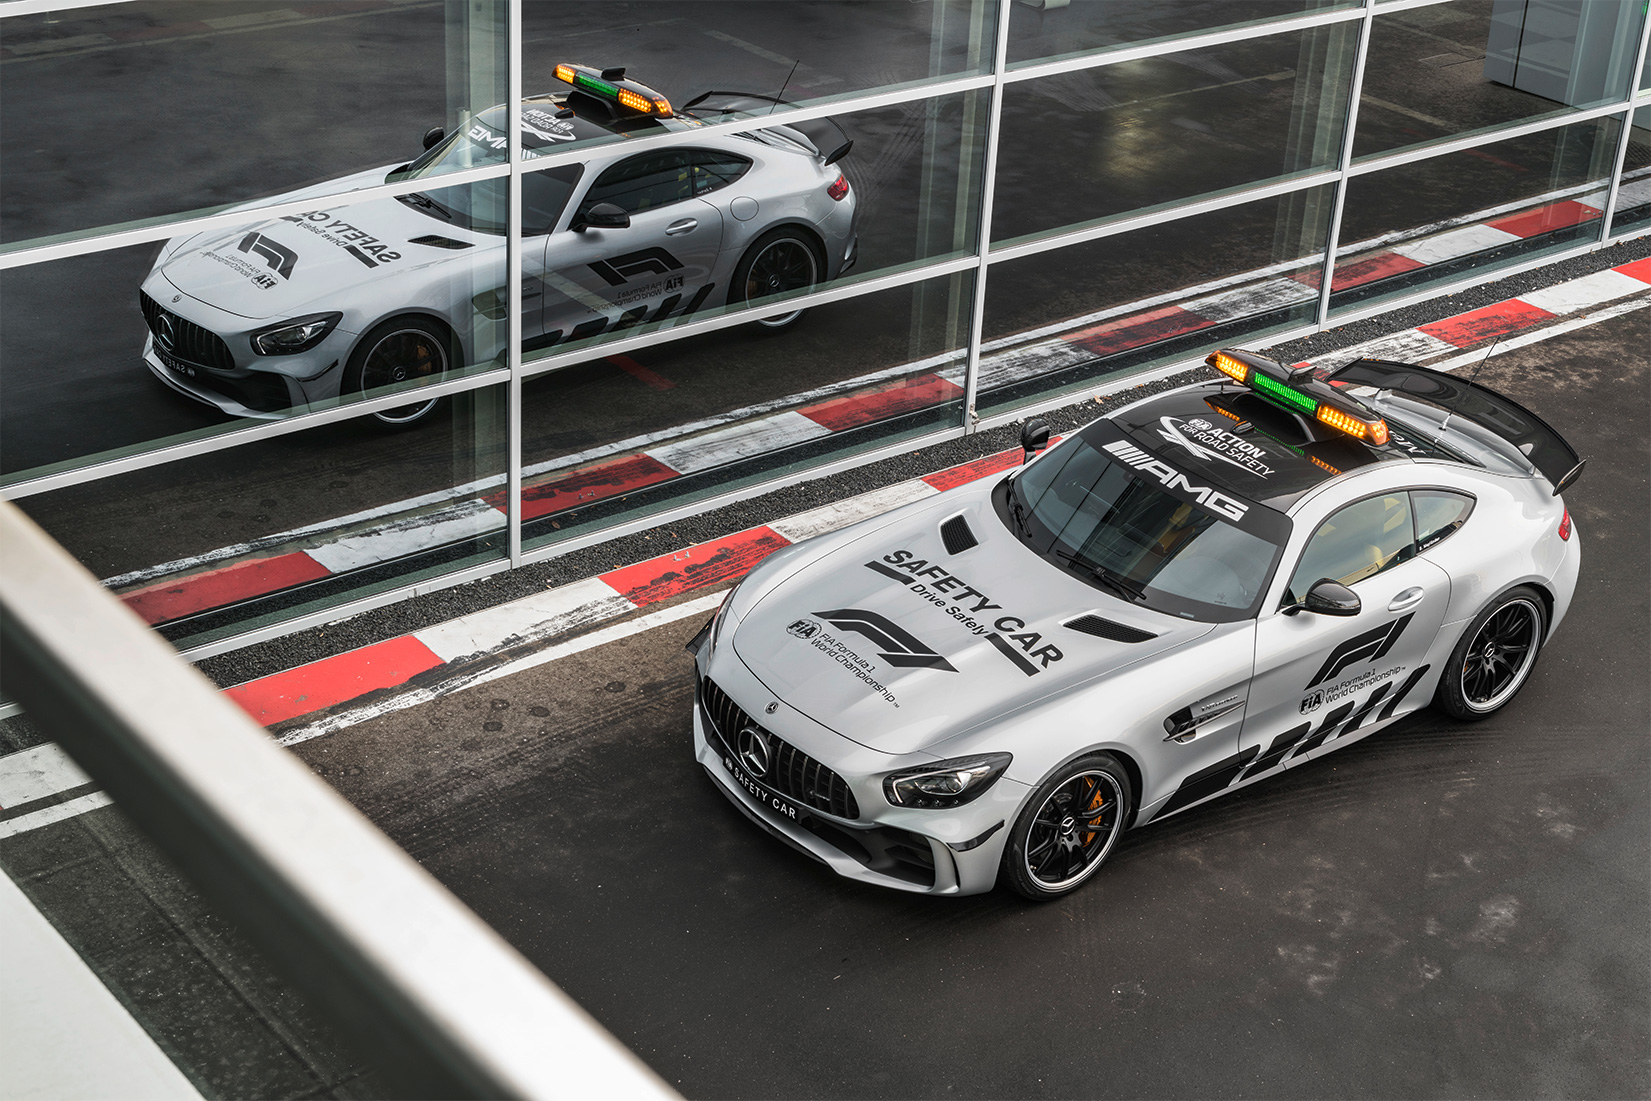 TrackWorthy - 2018 Mercedes-AMG GT R Formula 1 Safety Car (11)